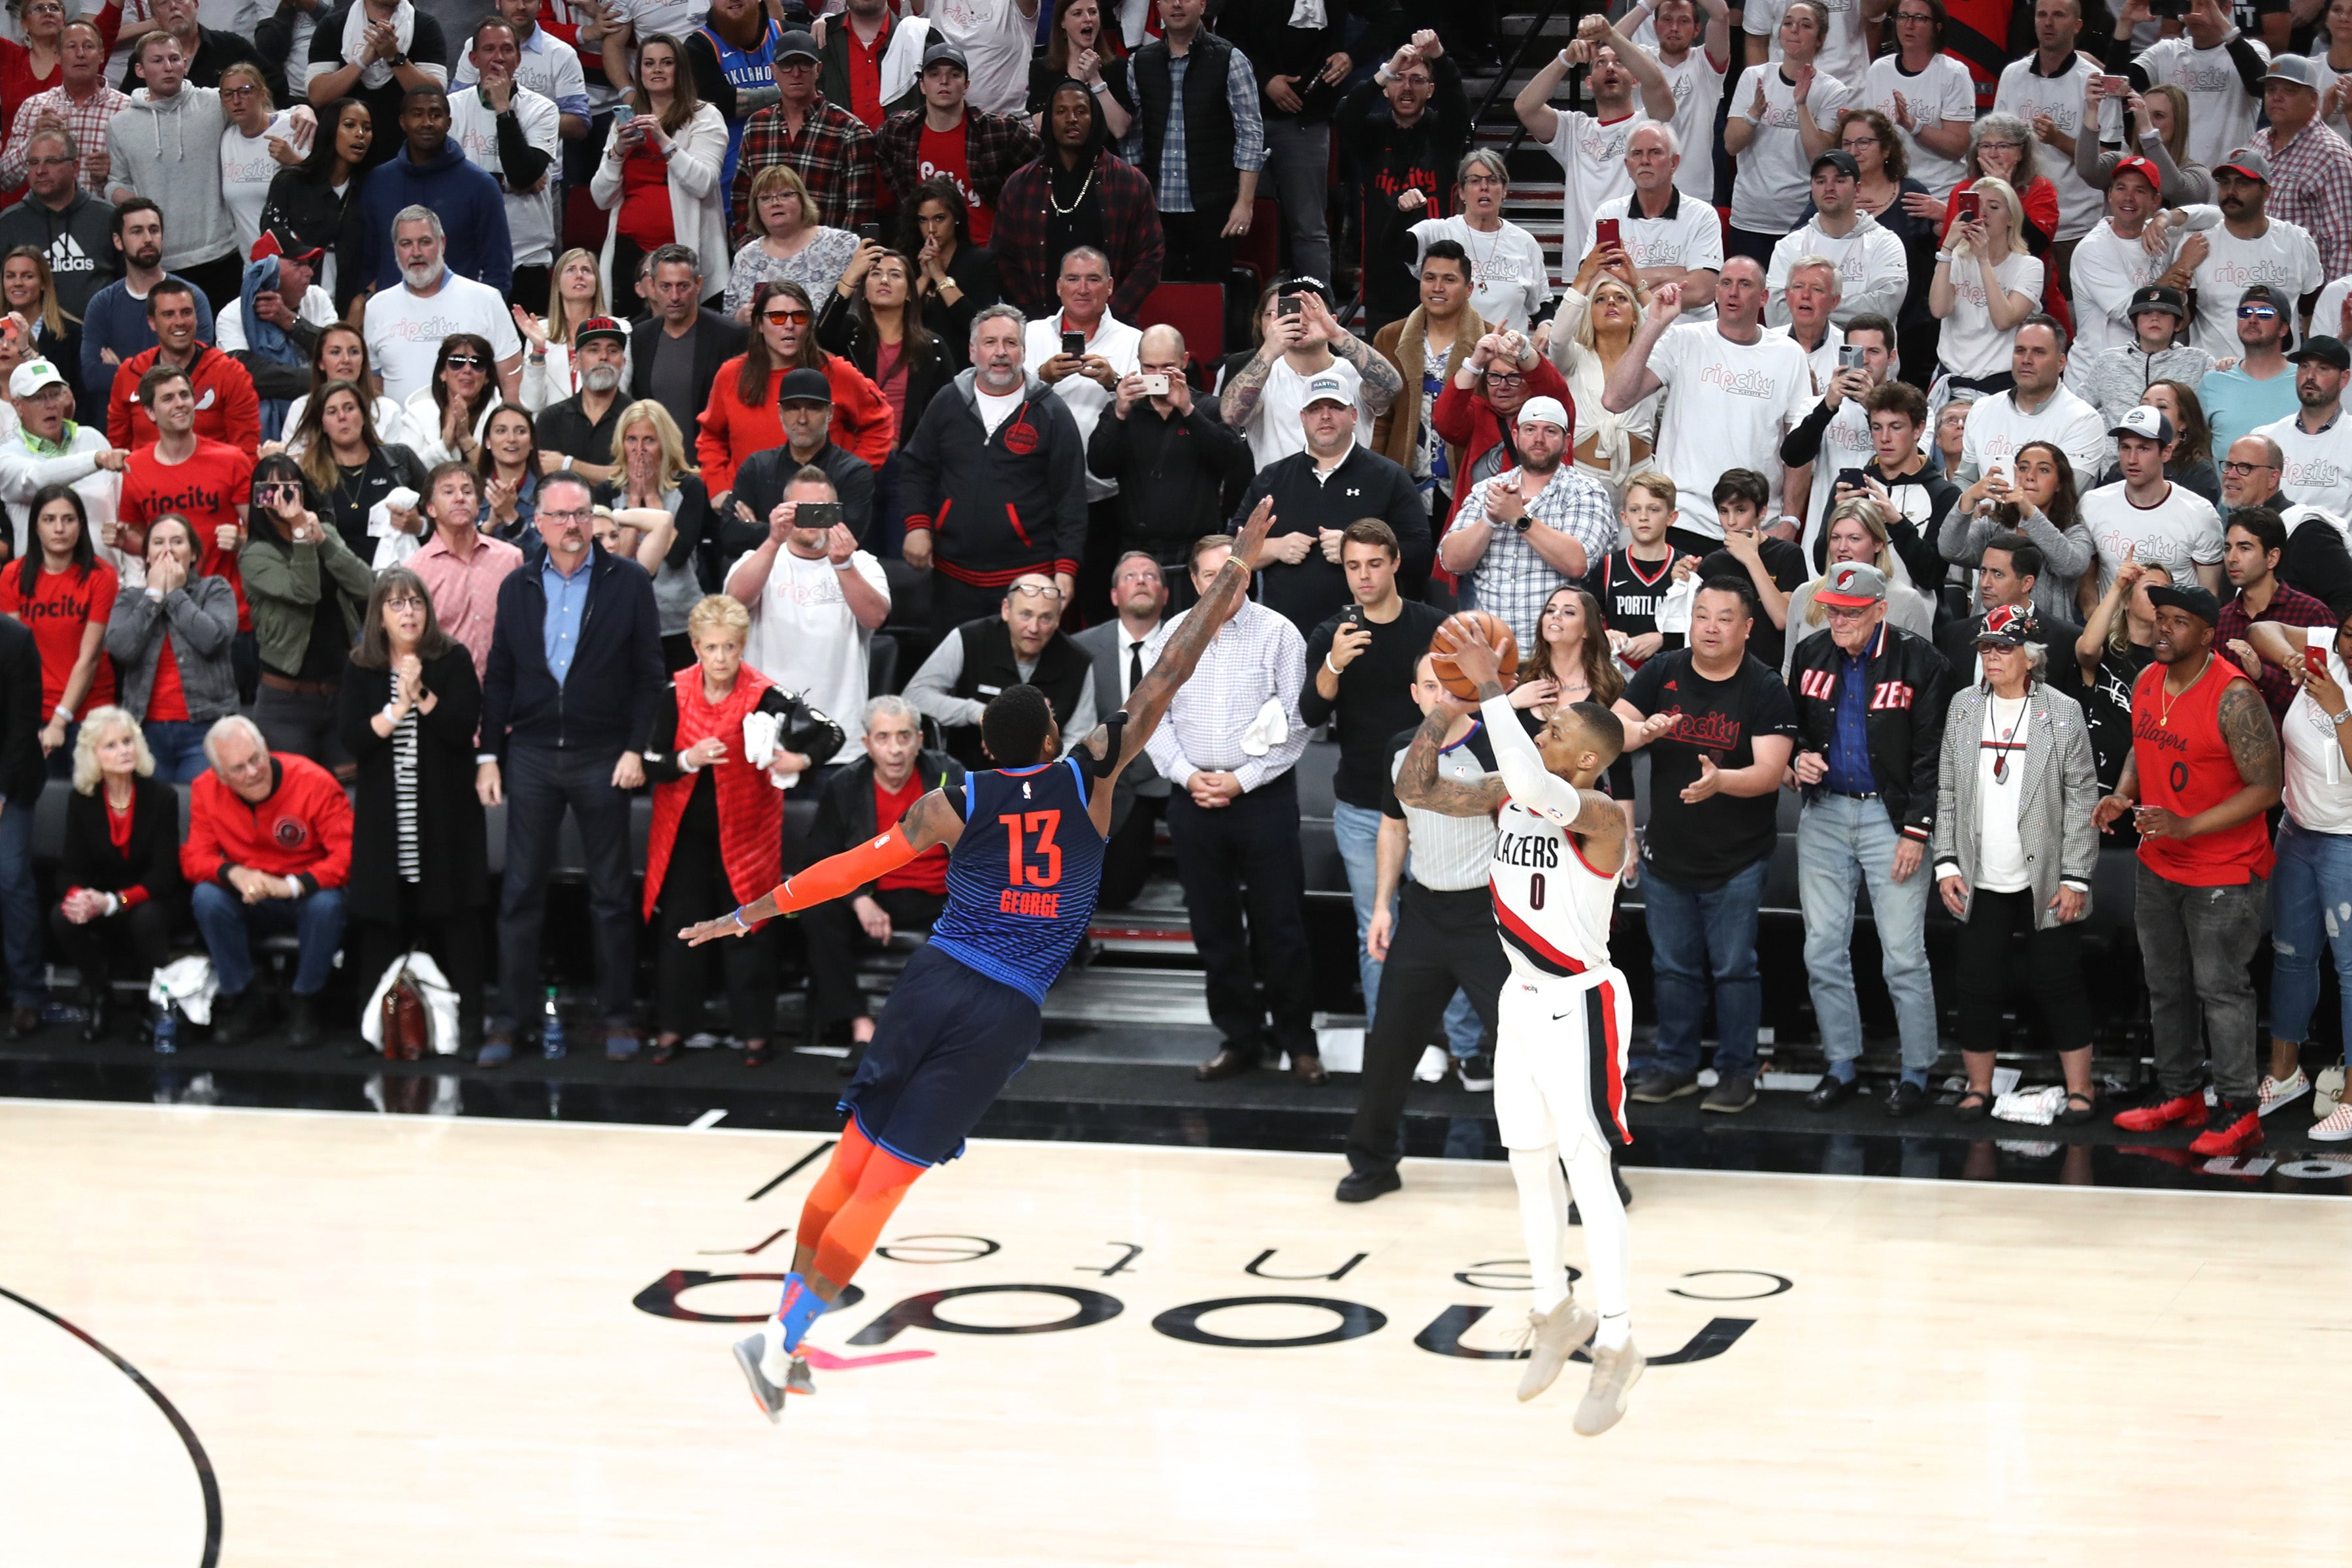 The Trail Blazers' Damian Lillard releases a 37-foot three-pointer over the Thunder's Paul George against a backdrop of intensely expectant fans.